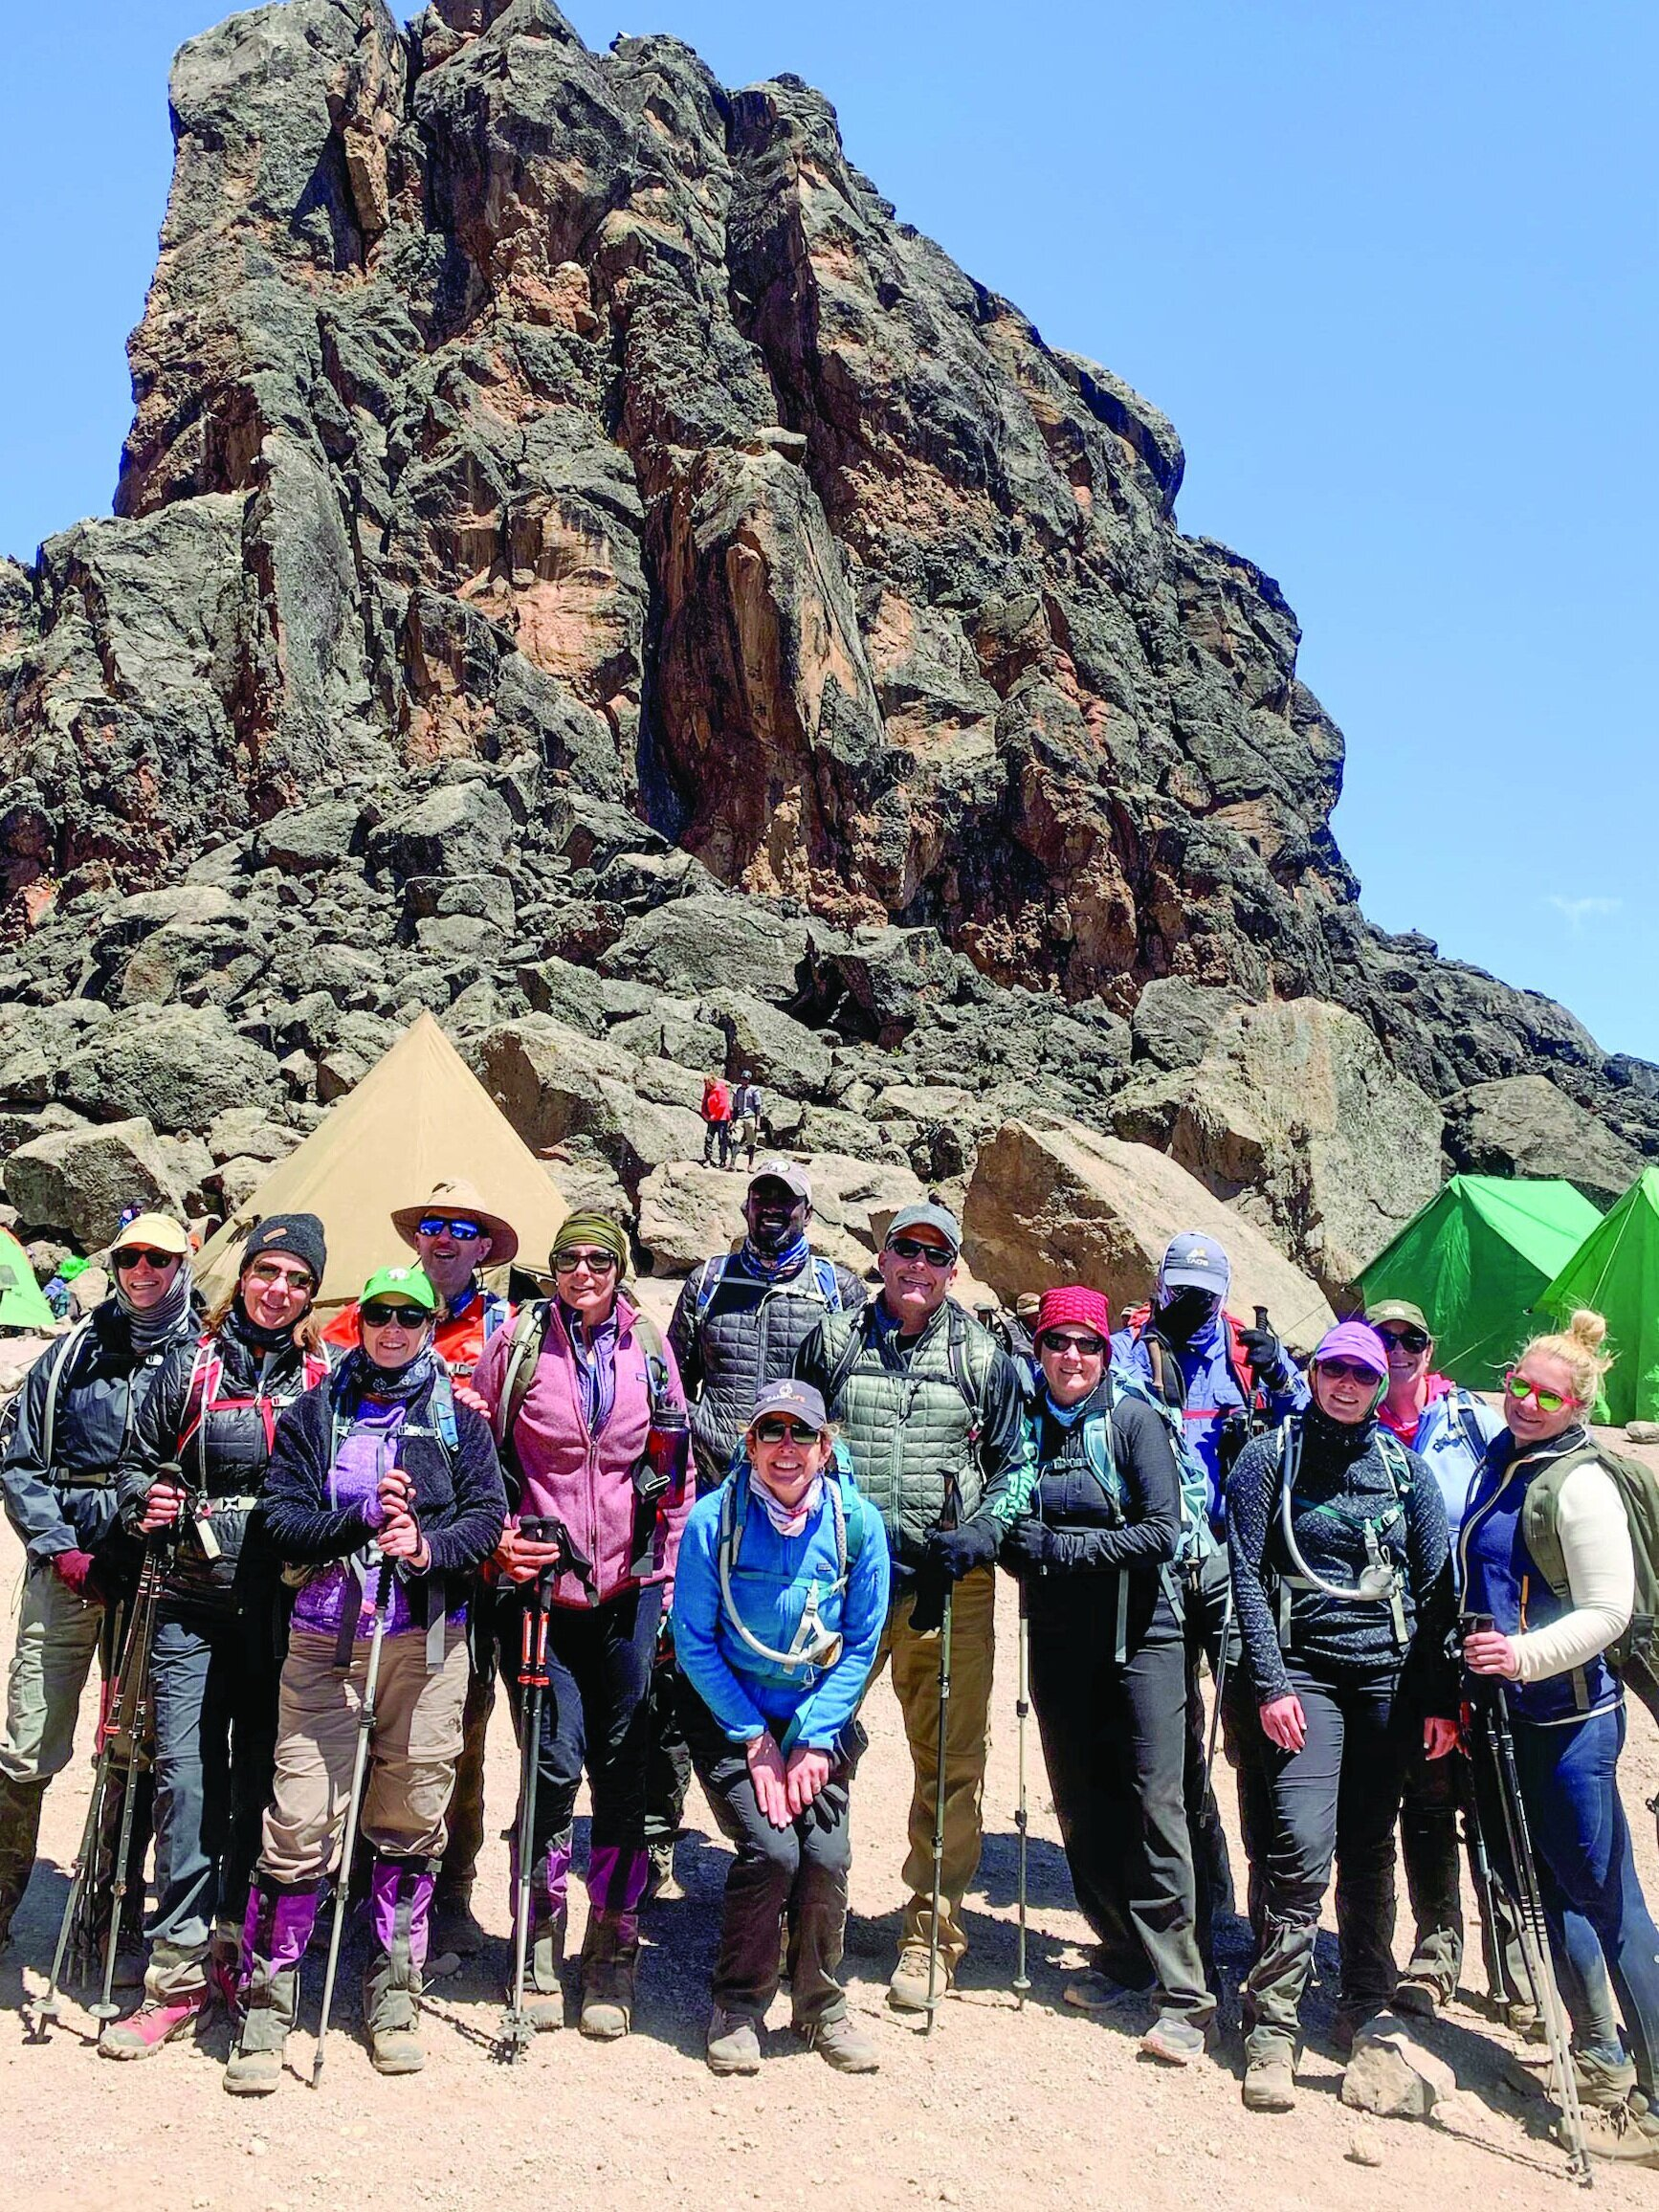 At lava Tower camp, the group hit above 15,000 feet. They ate lunch there and then descended back down to 13,000 feet to Barranco Camp for the night.